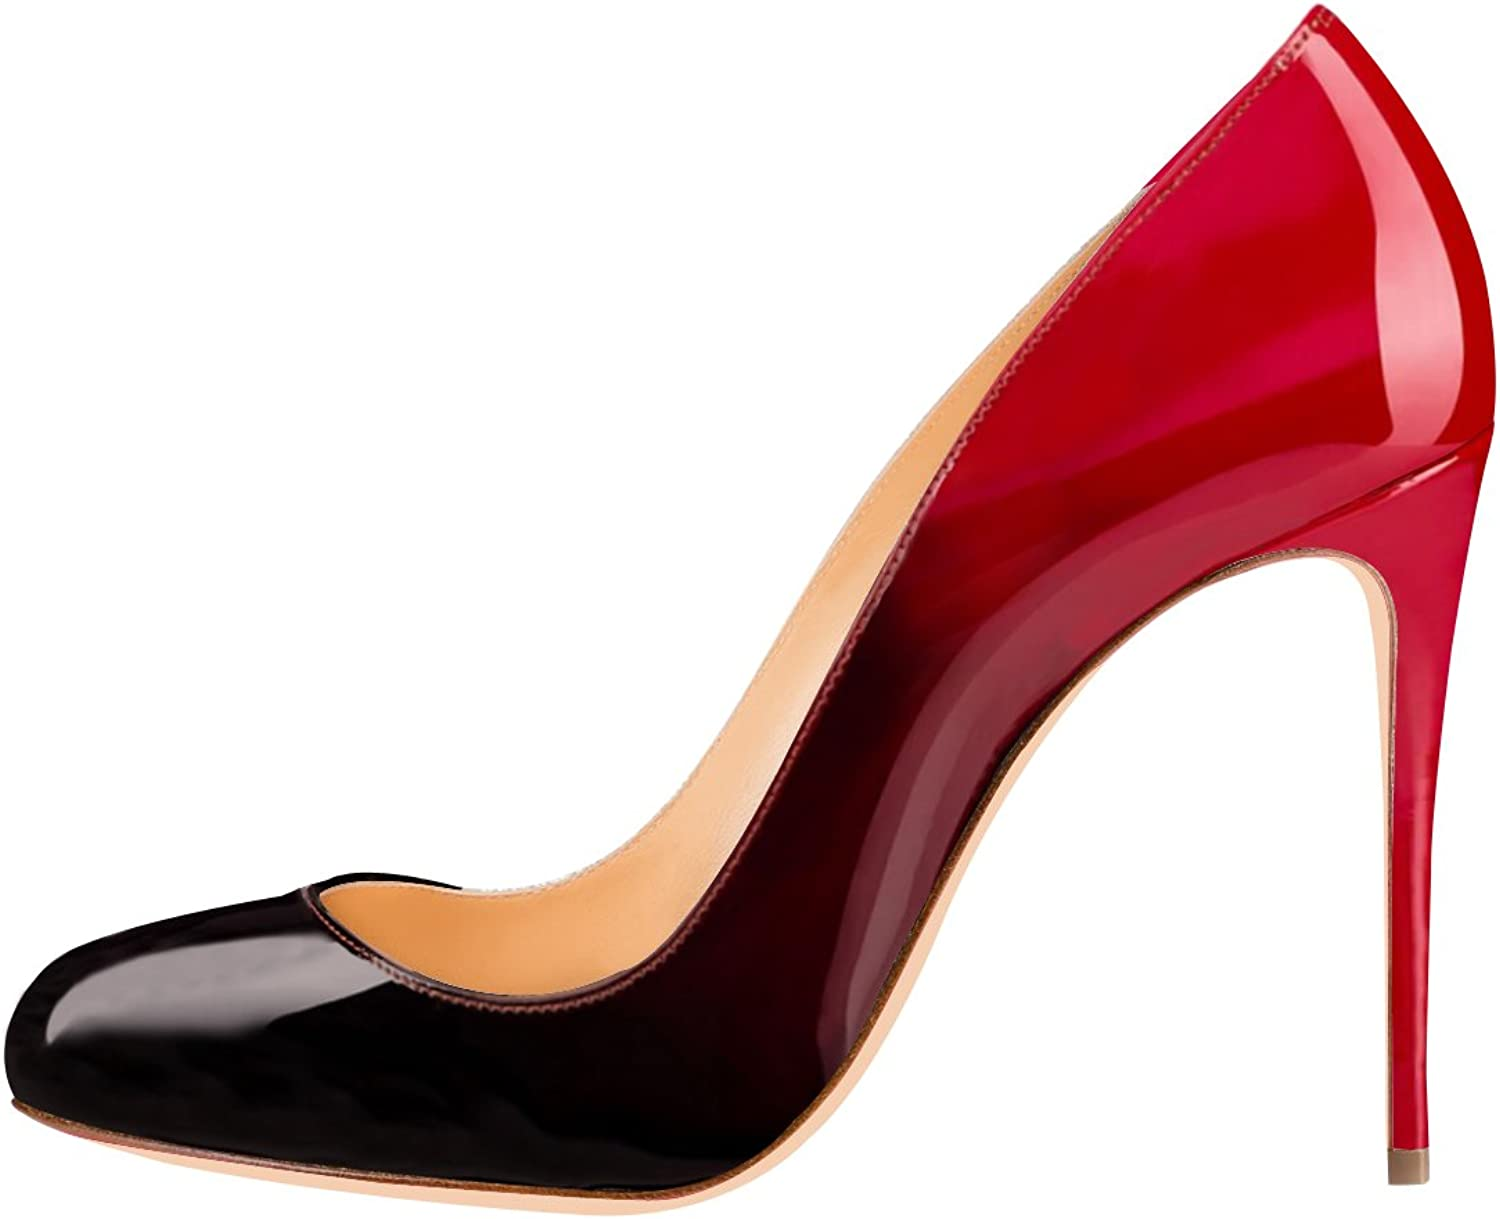 Joogo Womens Classic Round Toe High Heel Stiletto Multicolord Dress Pumps Court shoes for Wedding Party Black and Red